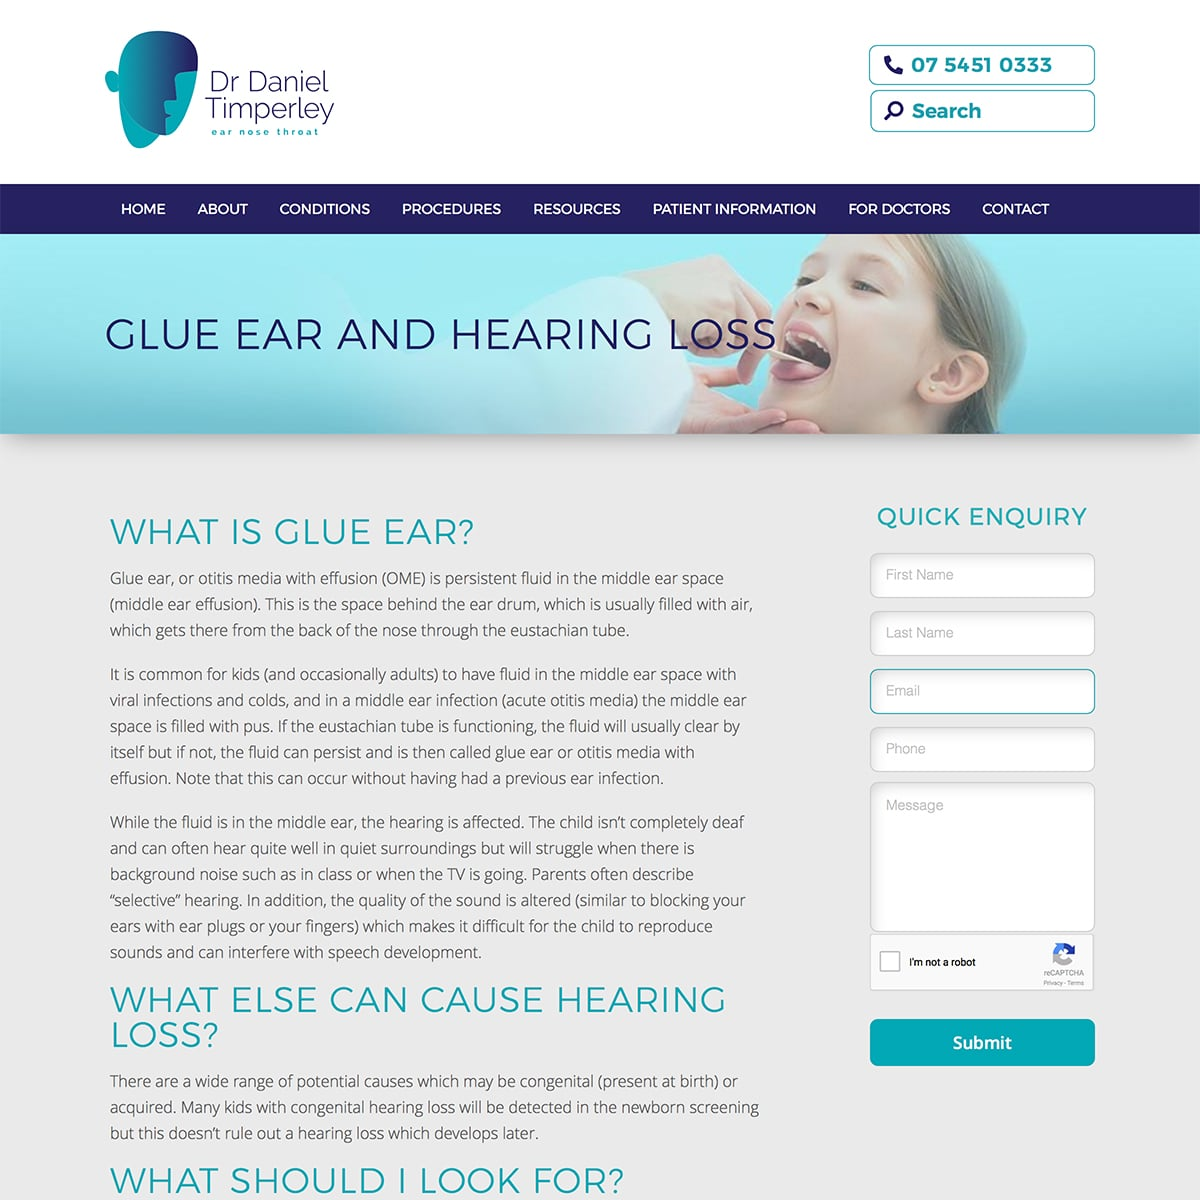 Dr Daniel Timperley - Glue Ear and Hearing Loss